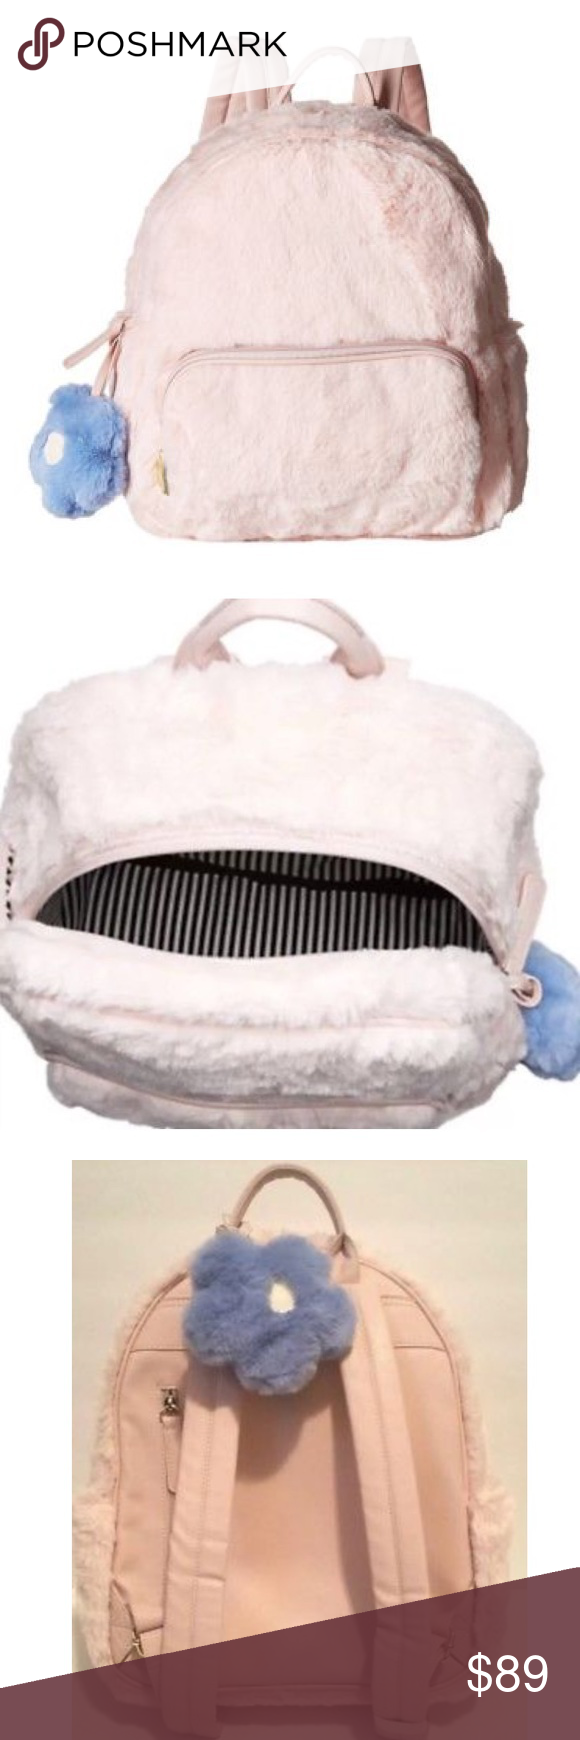 8fda054d0 Betsey Johnson Fuzzy faux Fur Backpack Blush Plush Pink faux fur Betsey  Johnson backpack. Comes with blue daisy flower charm. Great for teens or  adults.